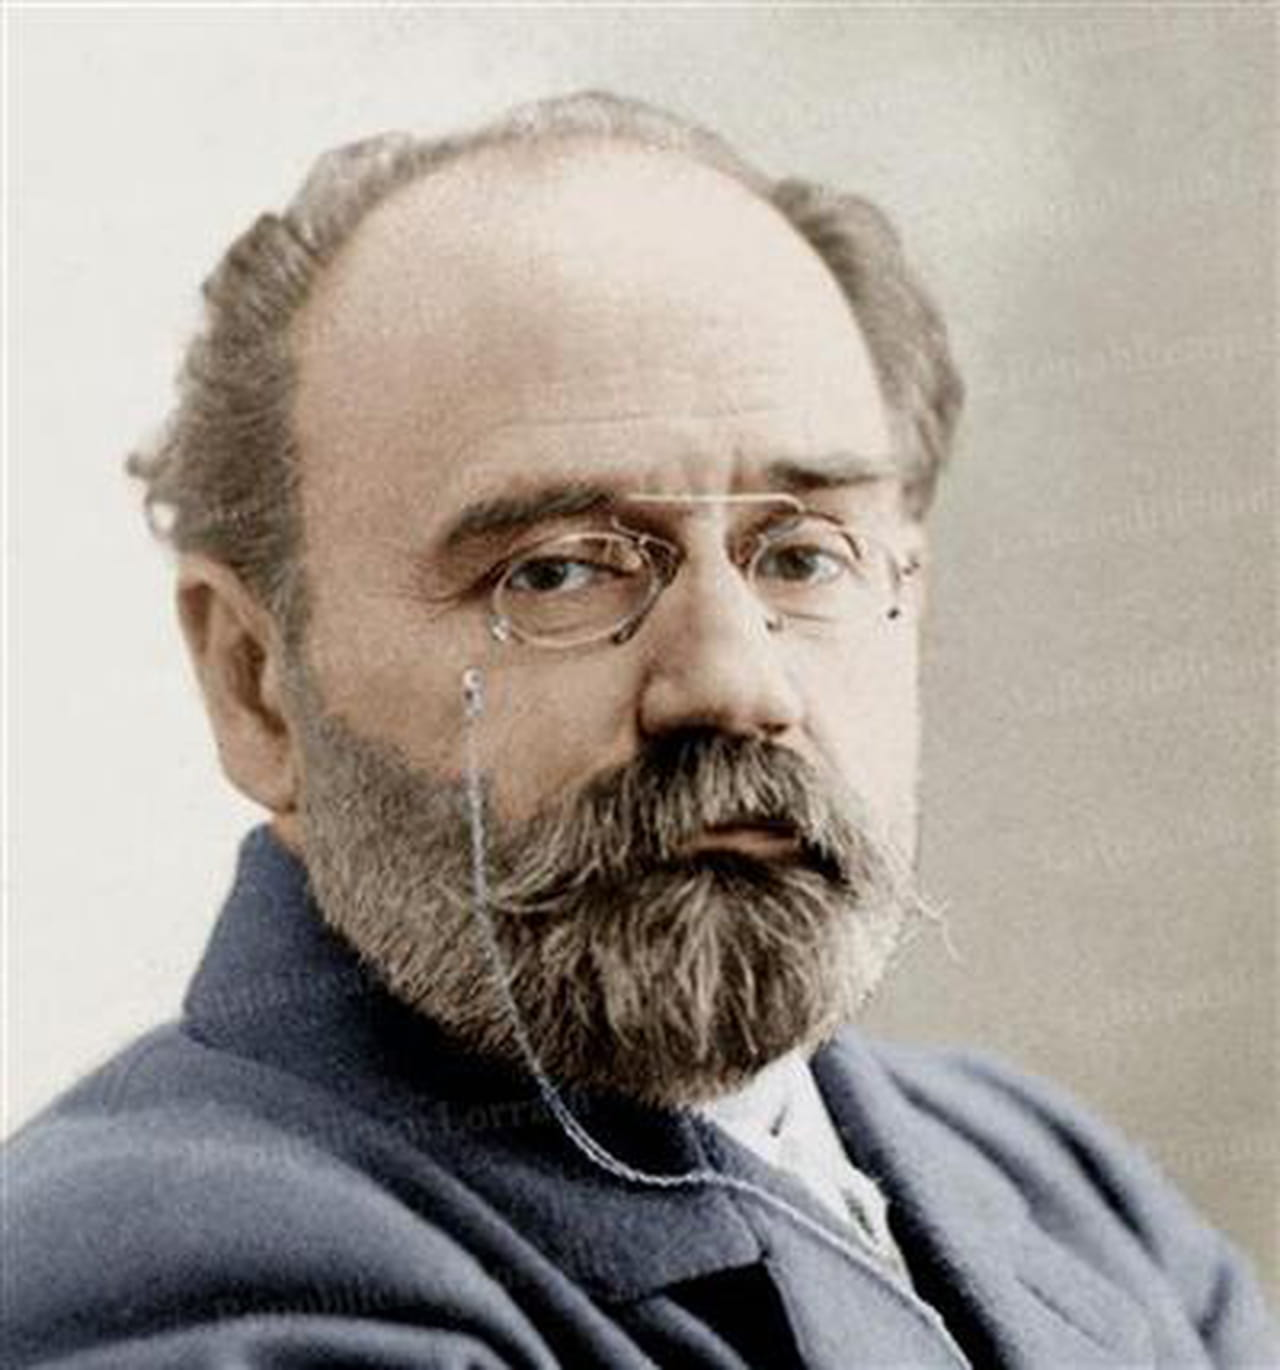 emile zola When dreyfus was in jail at the height of the dreyfus affair, zola wrote to dreyfus regarding a document in support of dreyfus' case, which must be sent to zola urgently if he is to sign it before the trial.